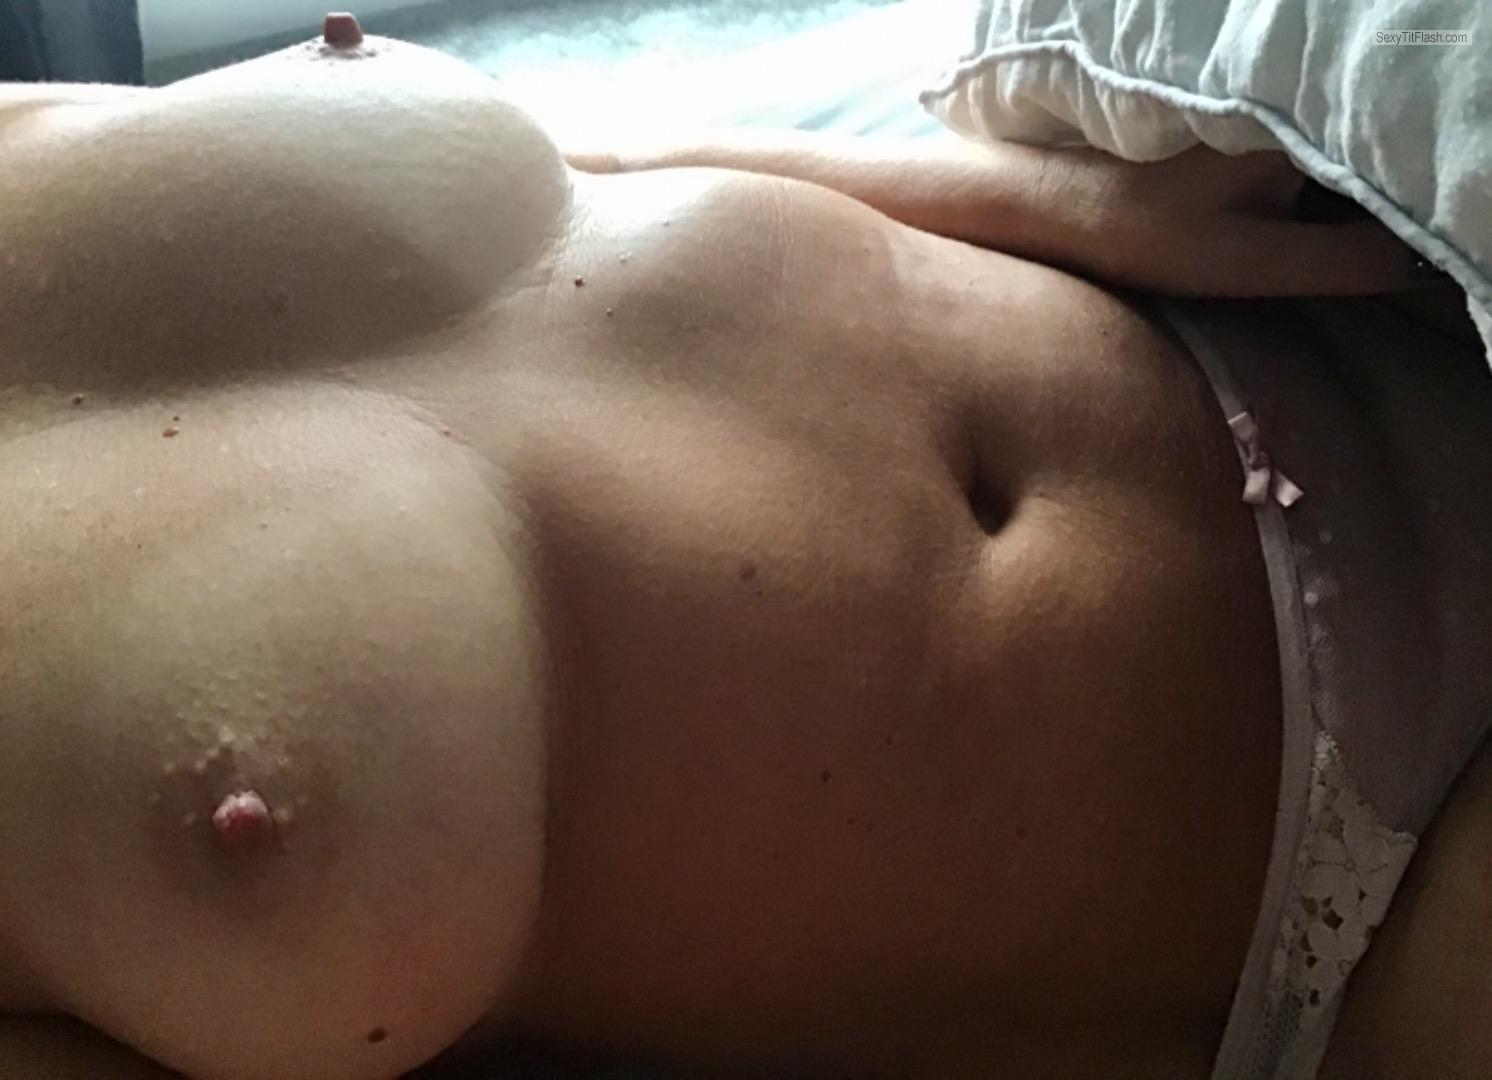 Tit Flash: Wife's Tanlined Big Tits - Wife48 from Australia